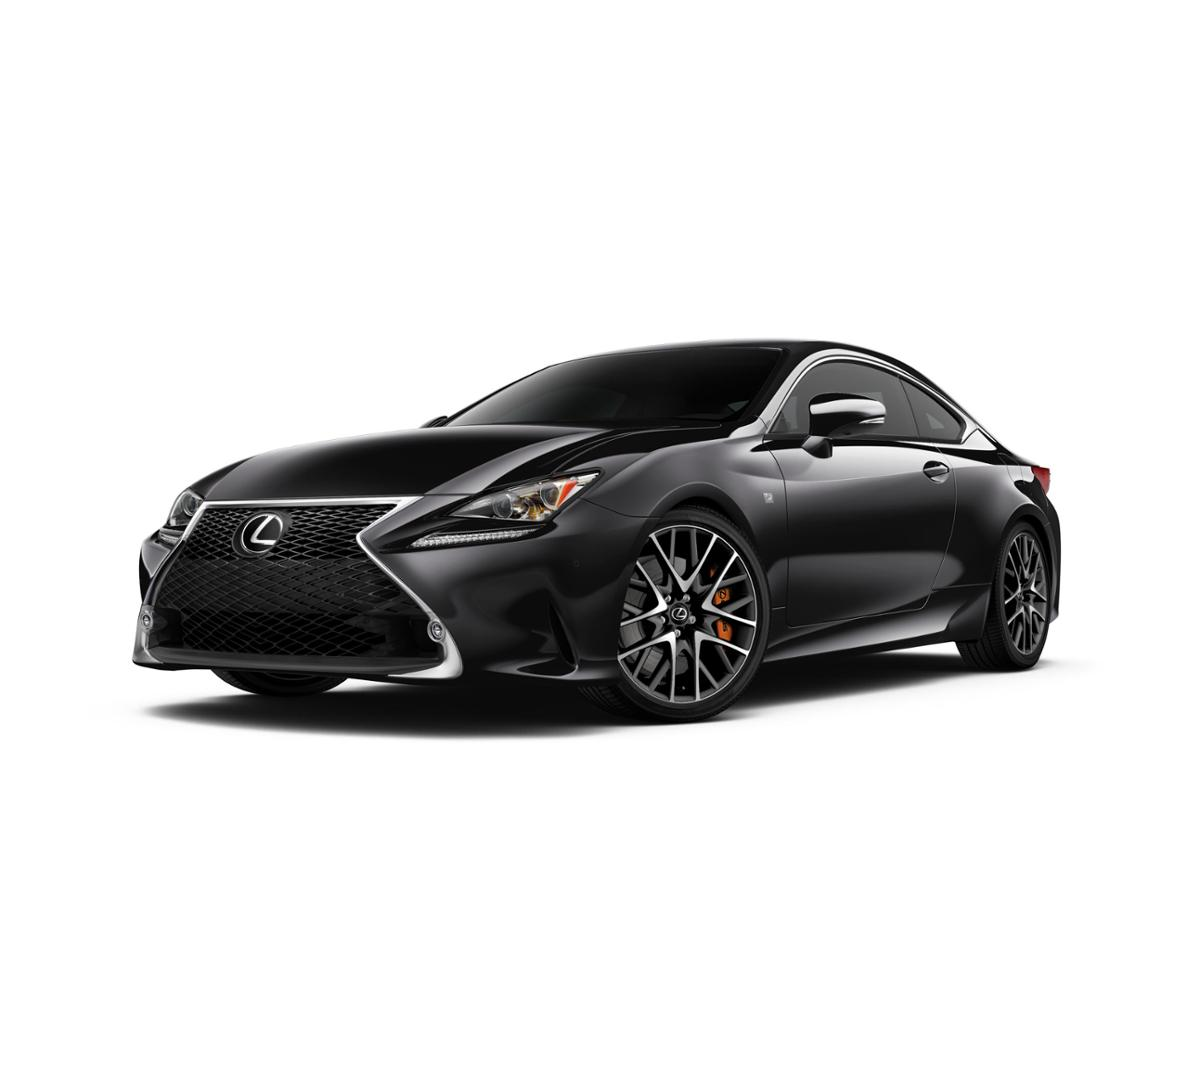 2018 Lexus RC 300 Vehicle Photo in Dallas, TX 75209